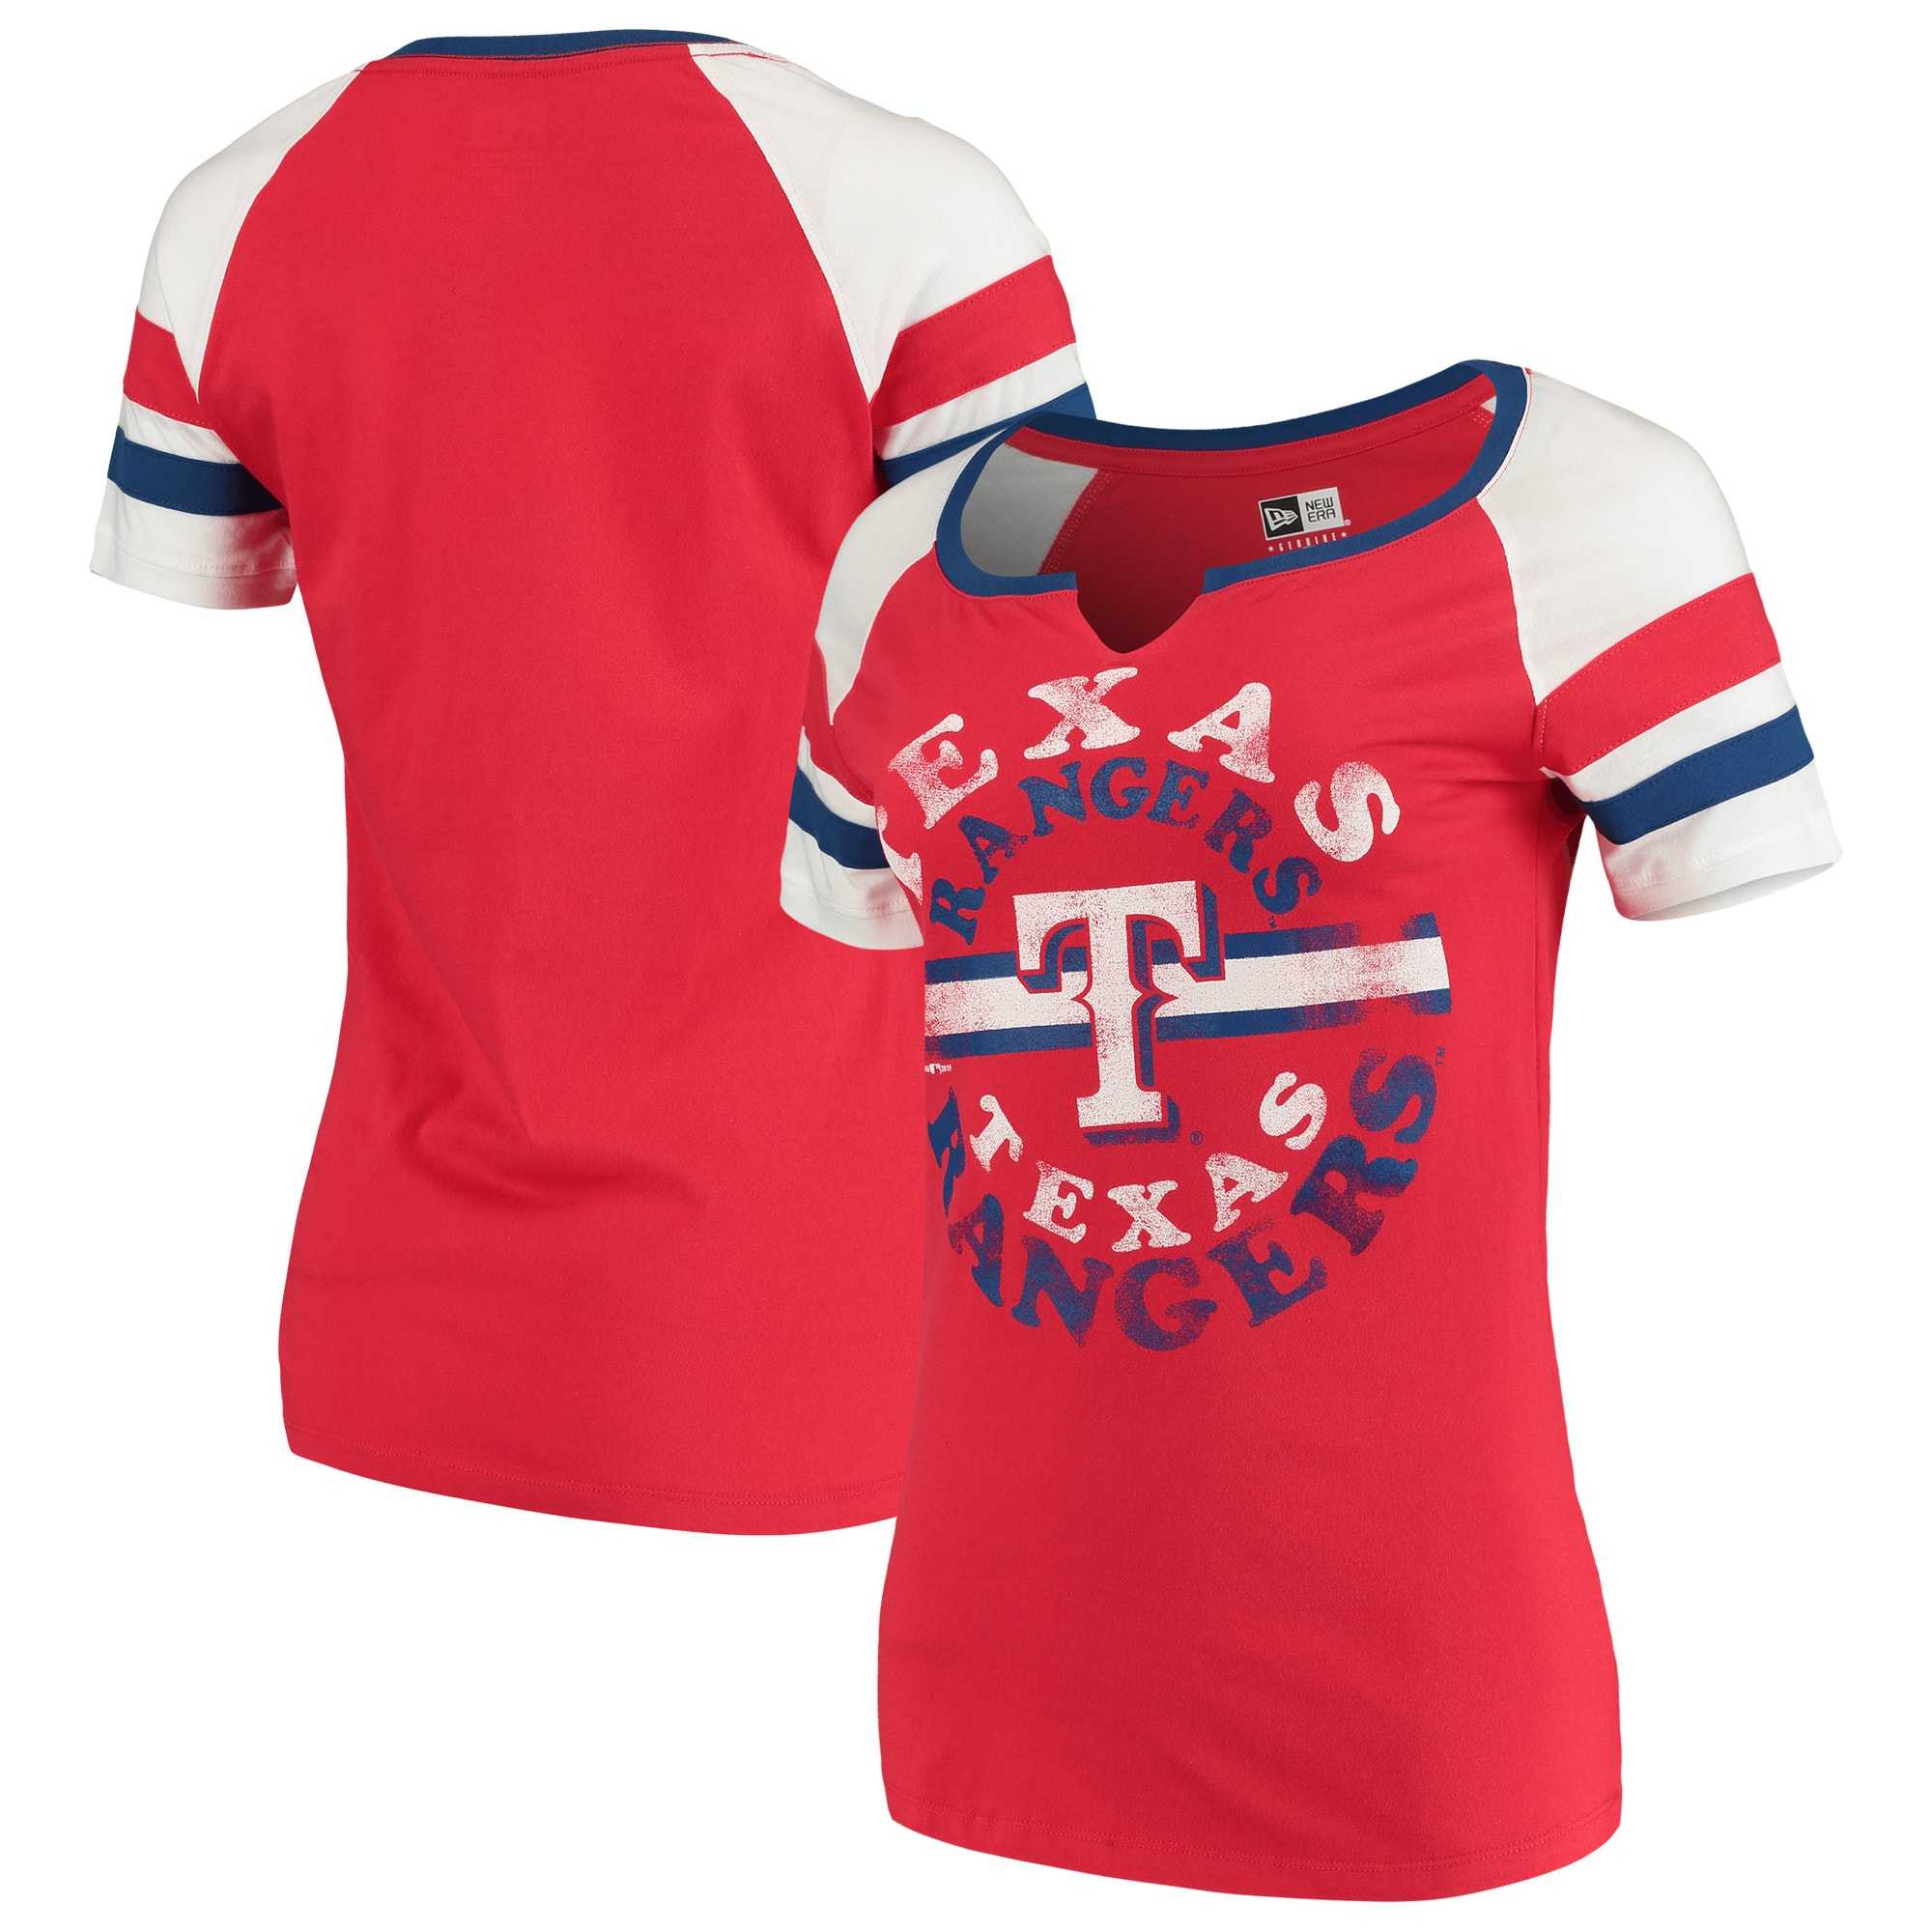 Texas Rangers New Era Women's Scoop Neck T-Shirt - Red